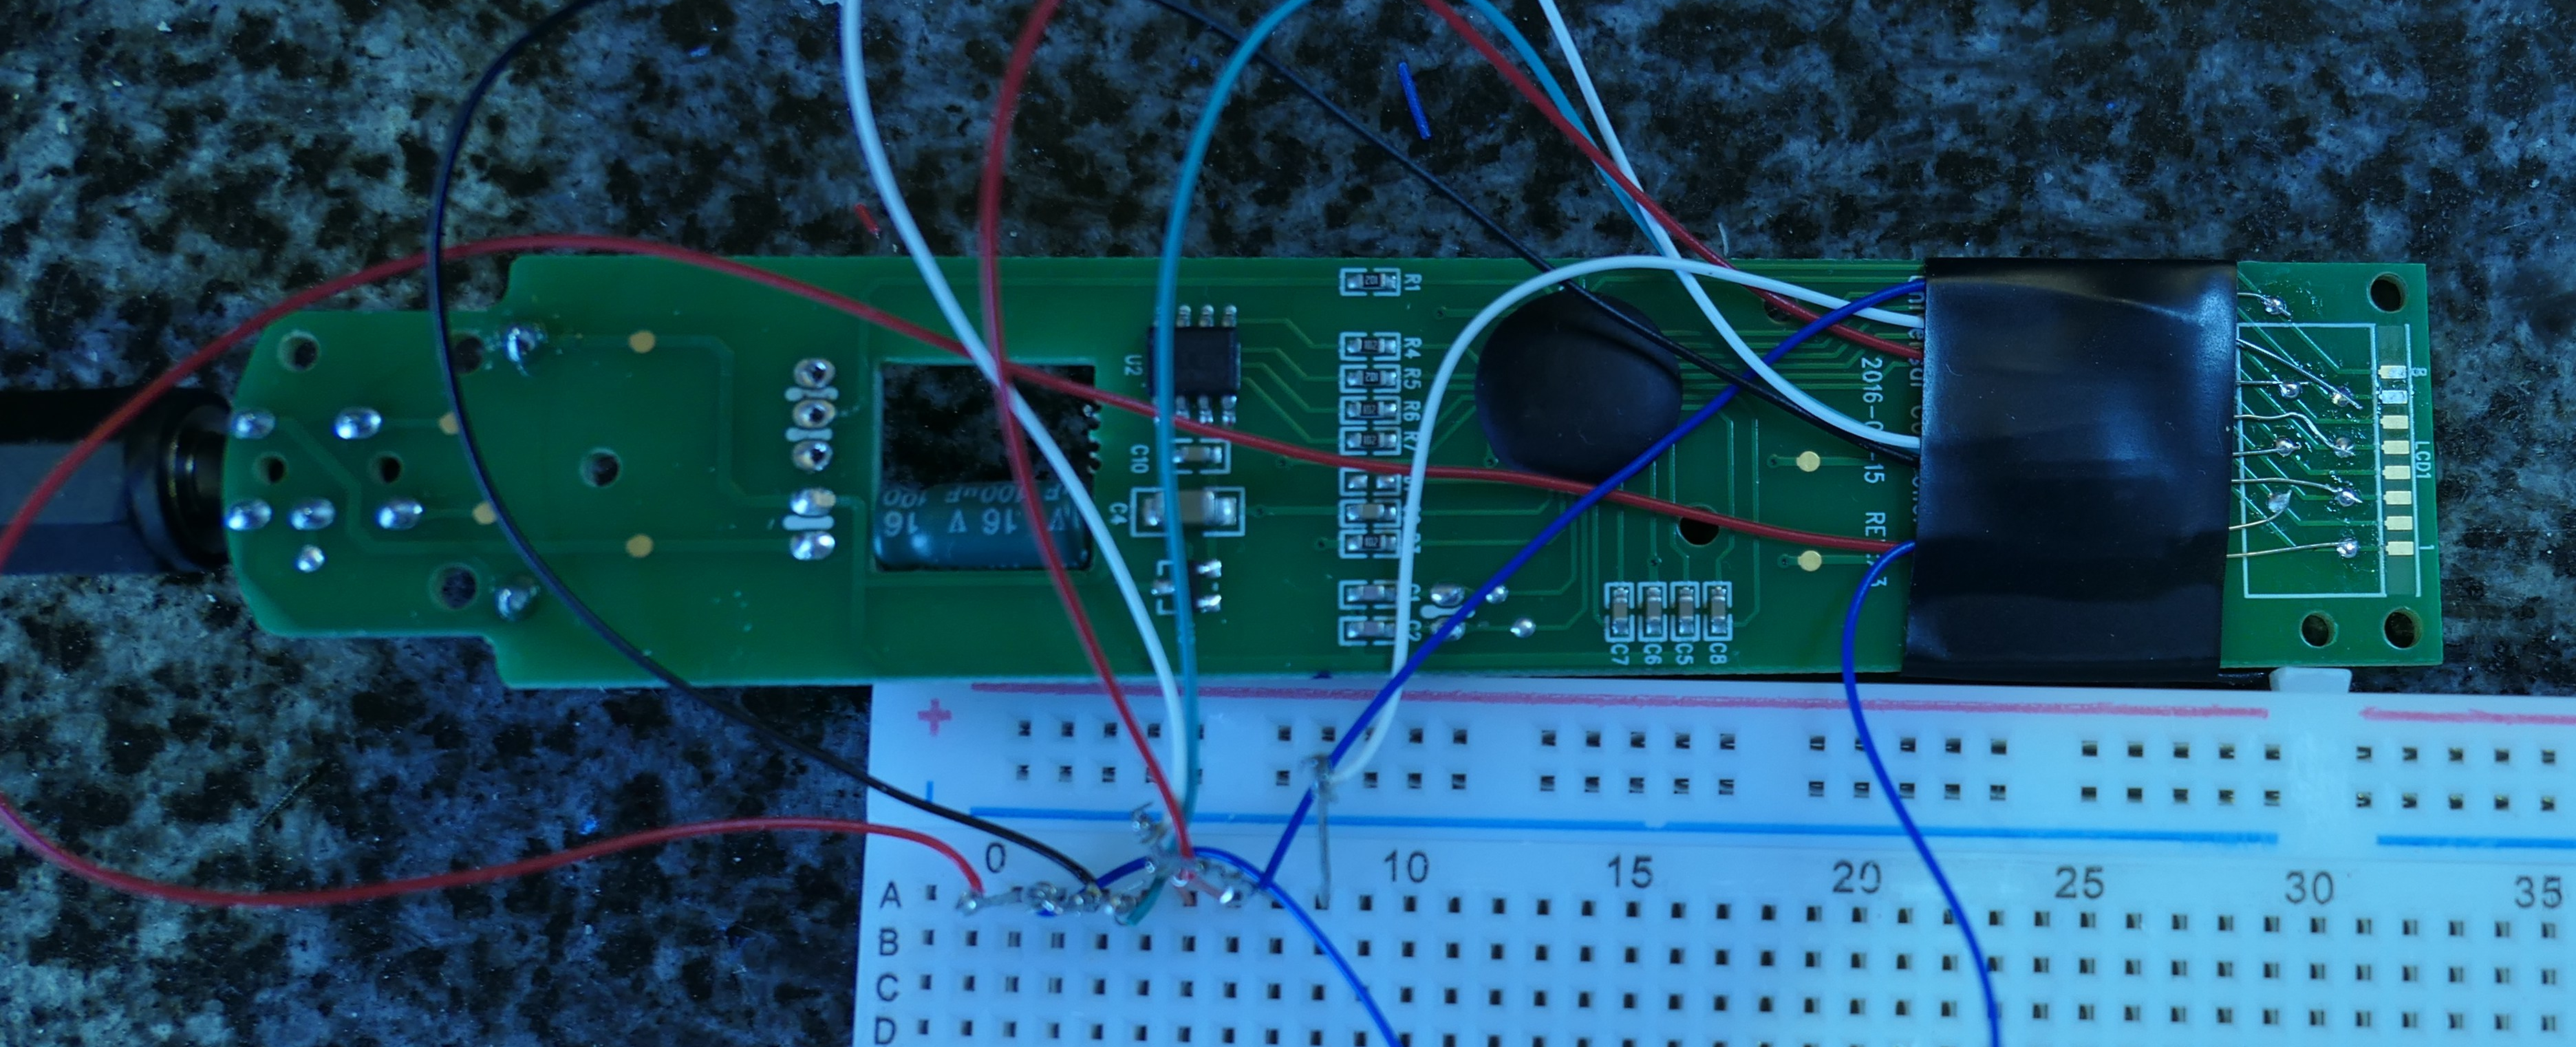 Wiring the LCD into a breadboard by using the test points.